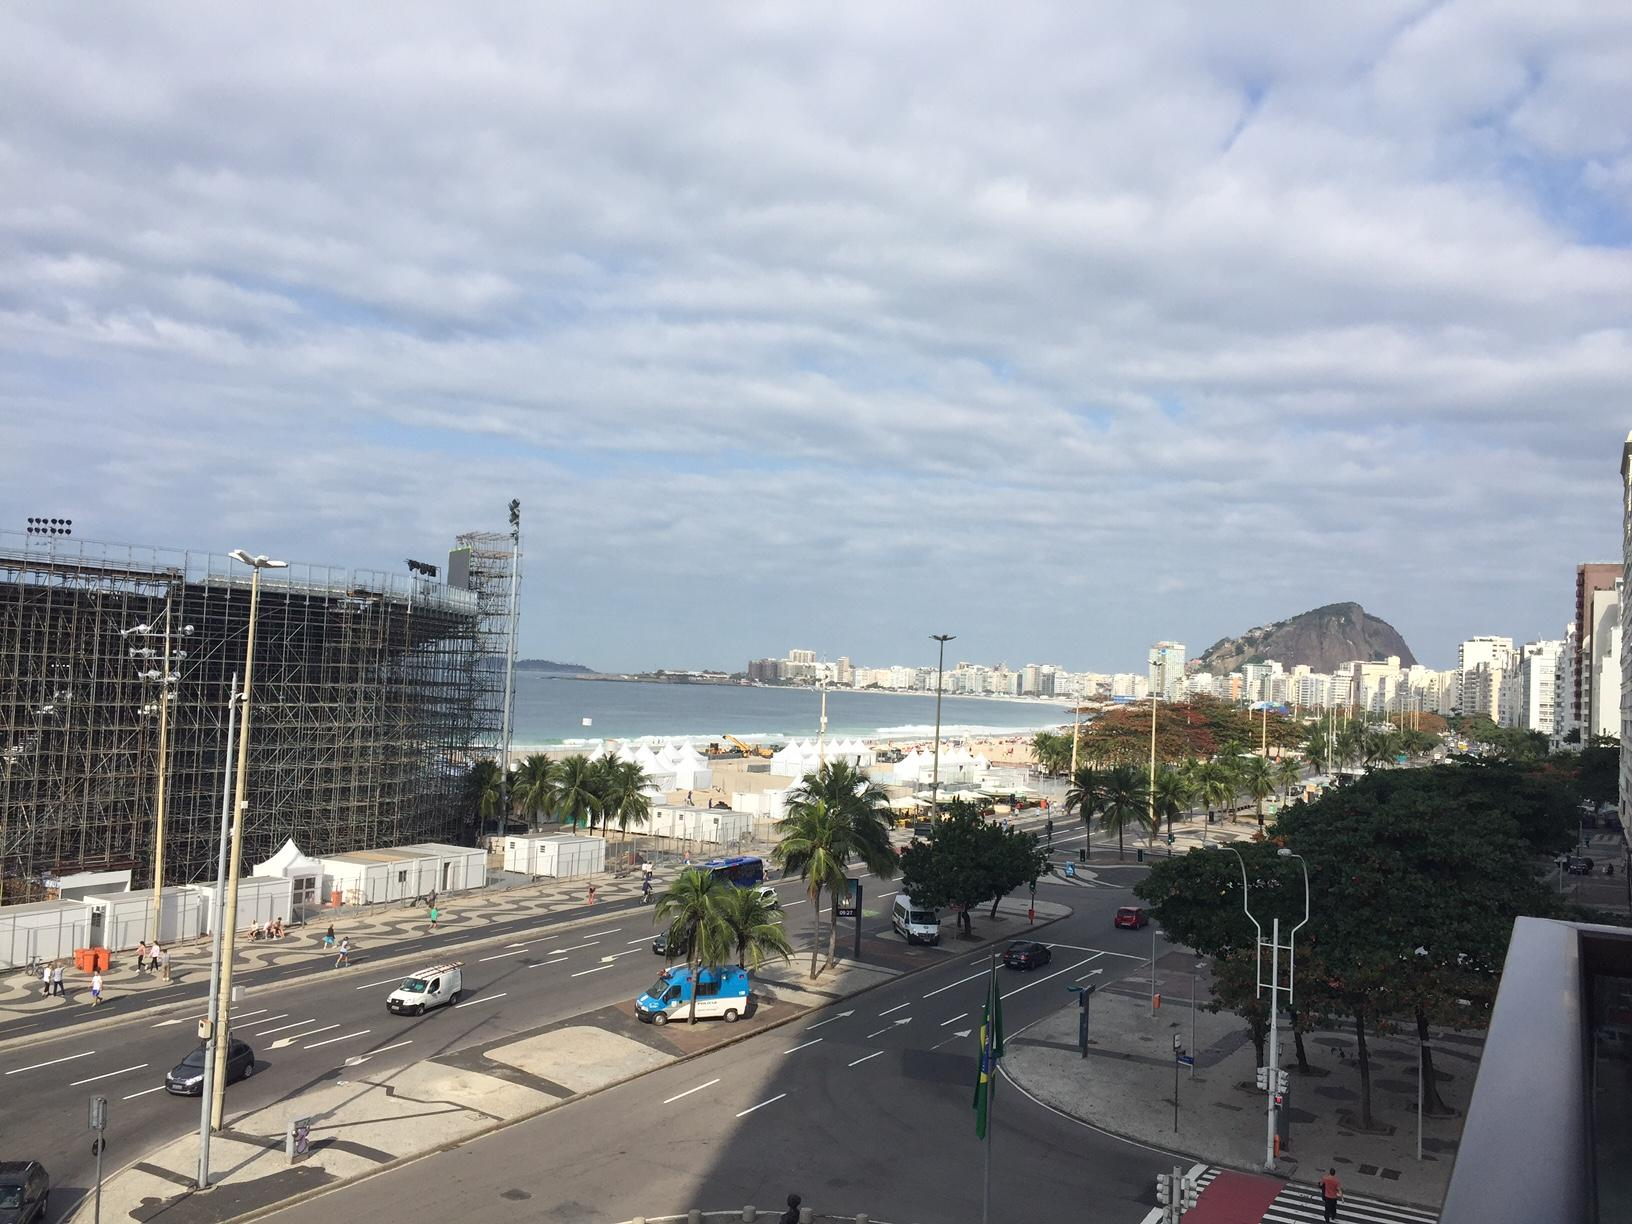 View of Part of Copacabana beach